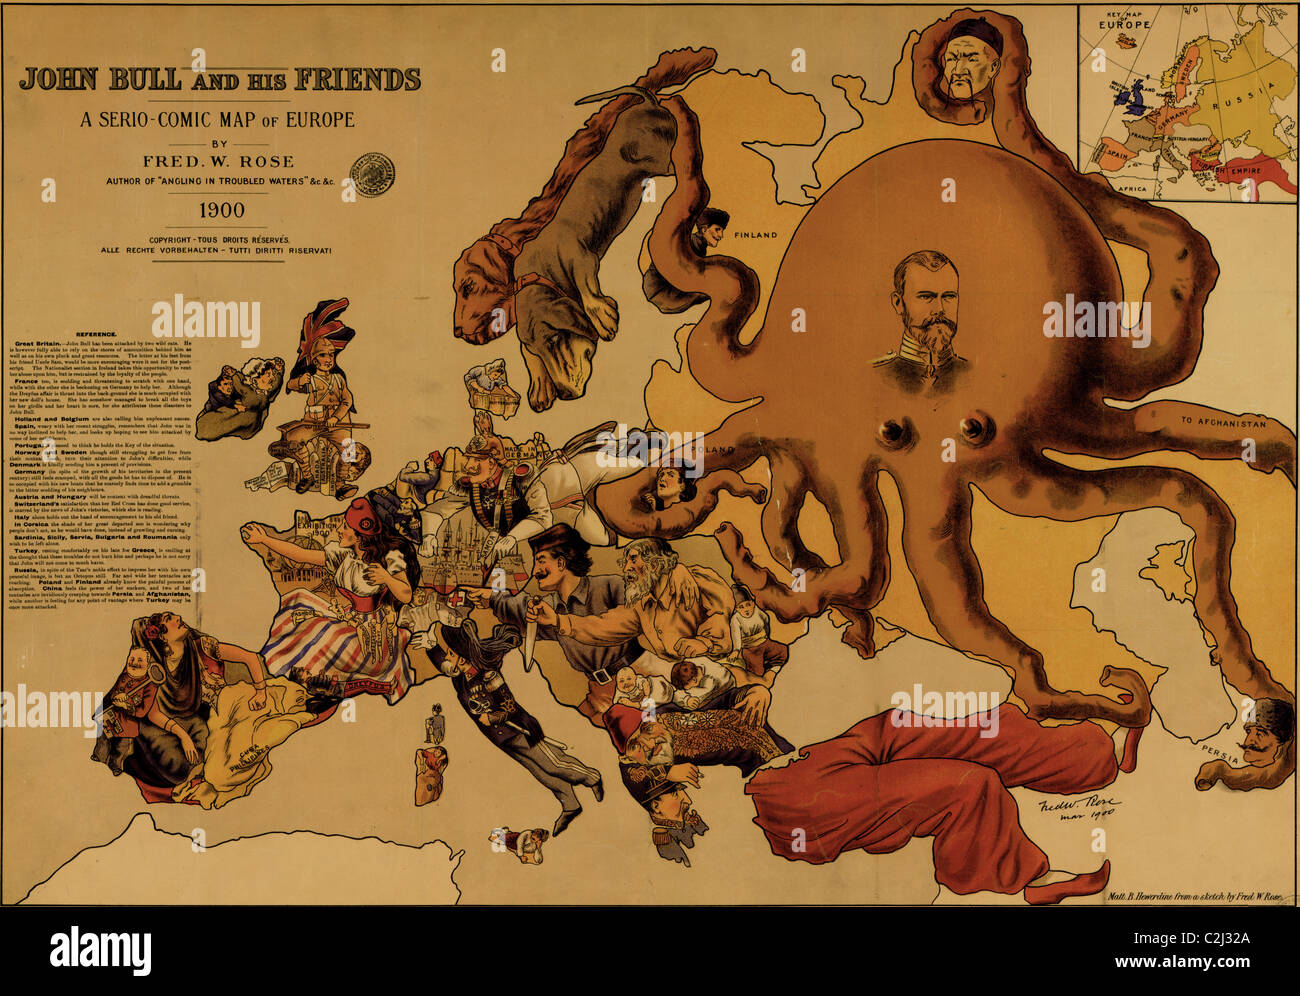 John Bull and his friends : a serio-comic map of Europe - 1900 - Stock Image